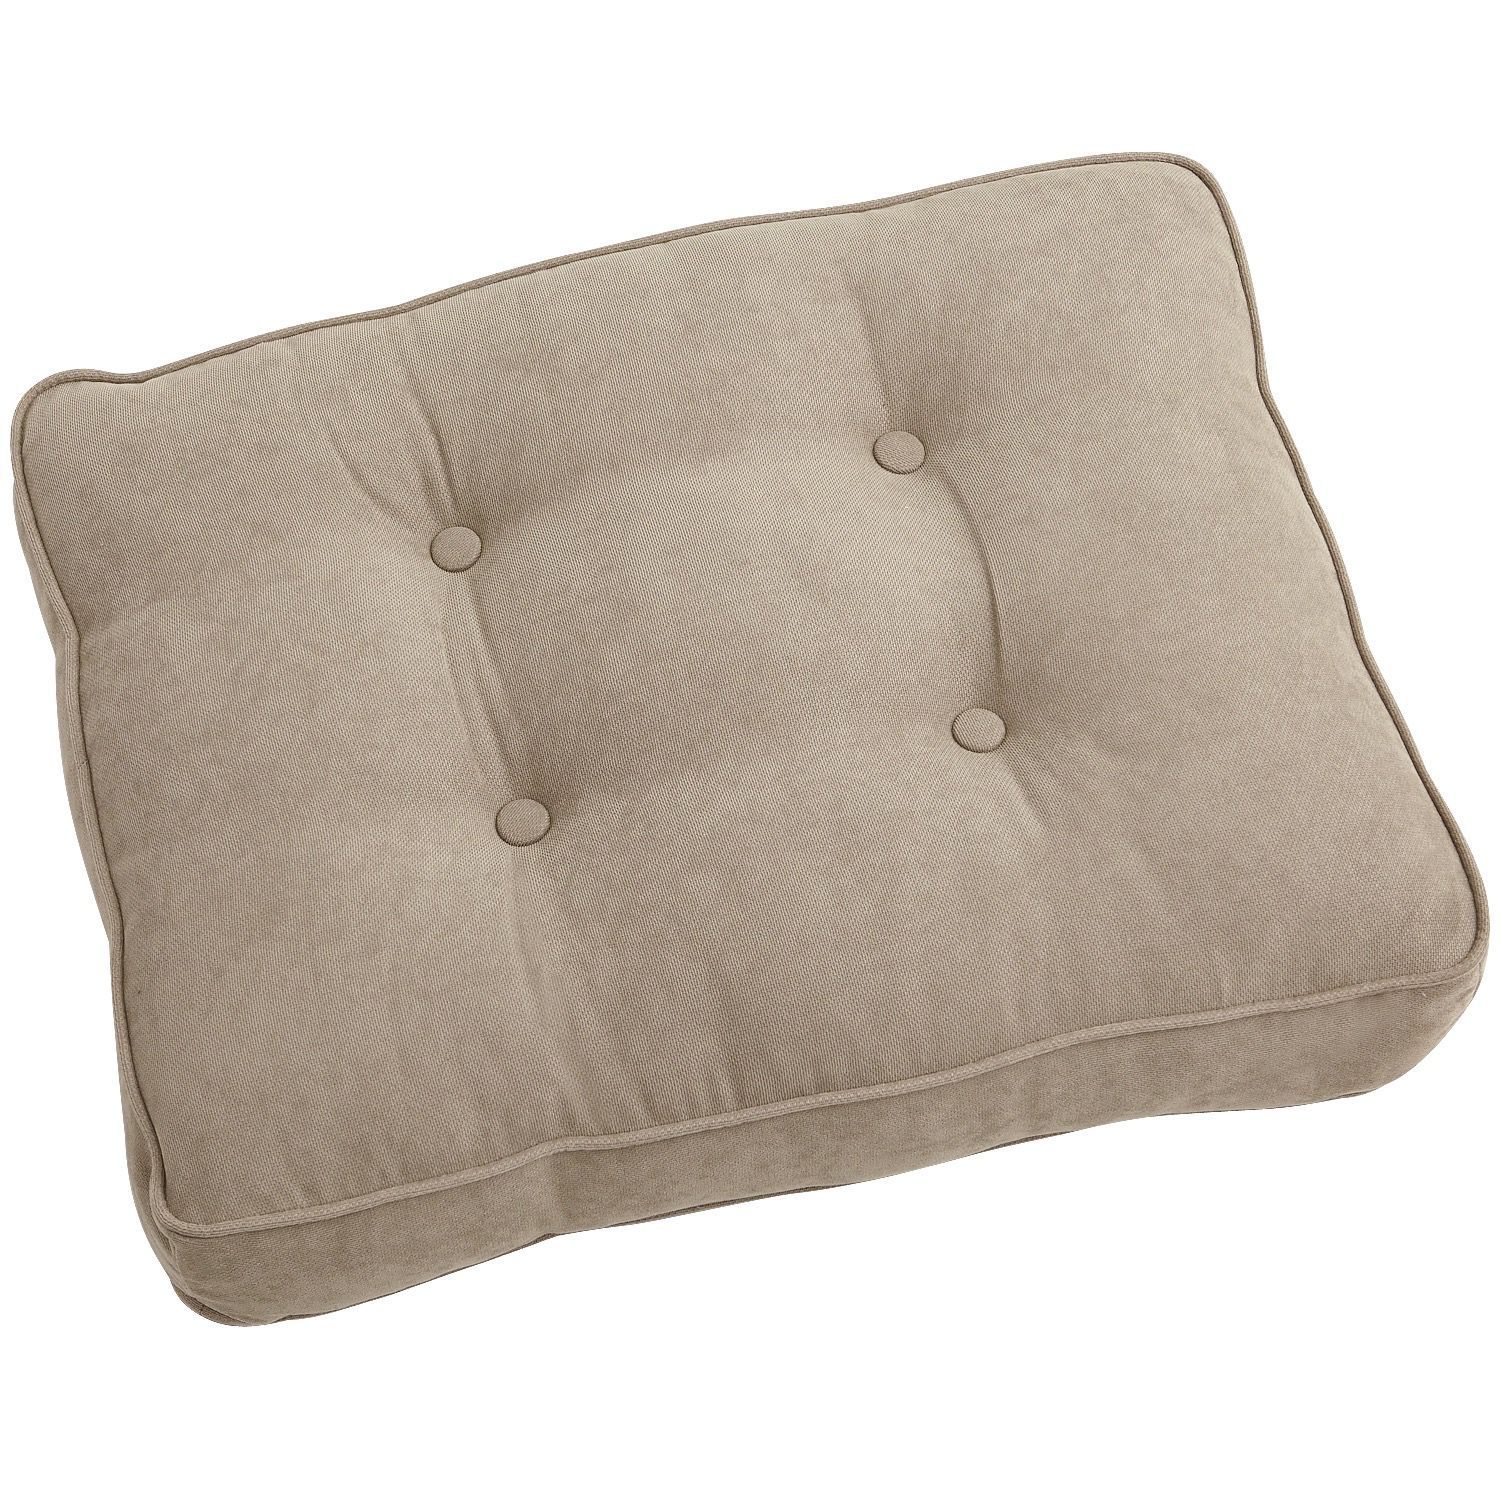 Ottoman cushion in calliope spice products